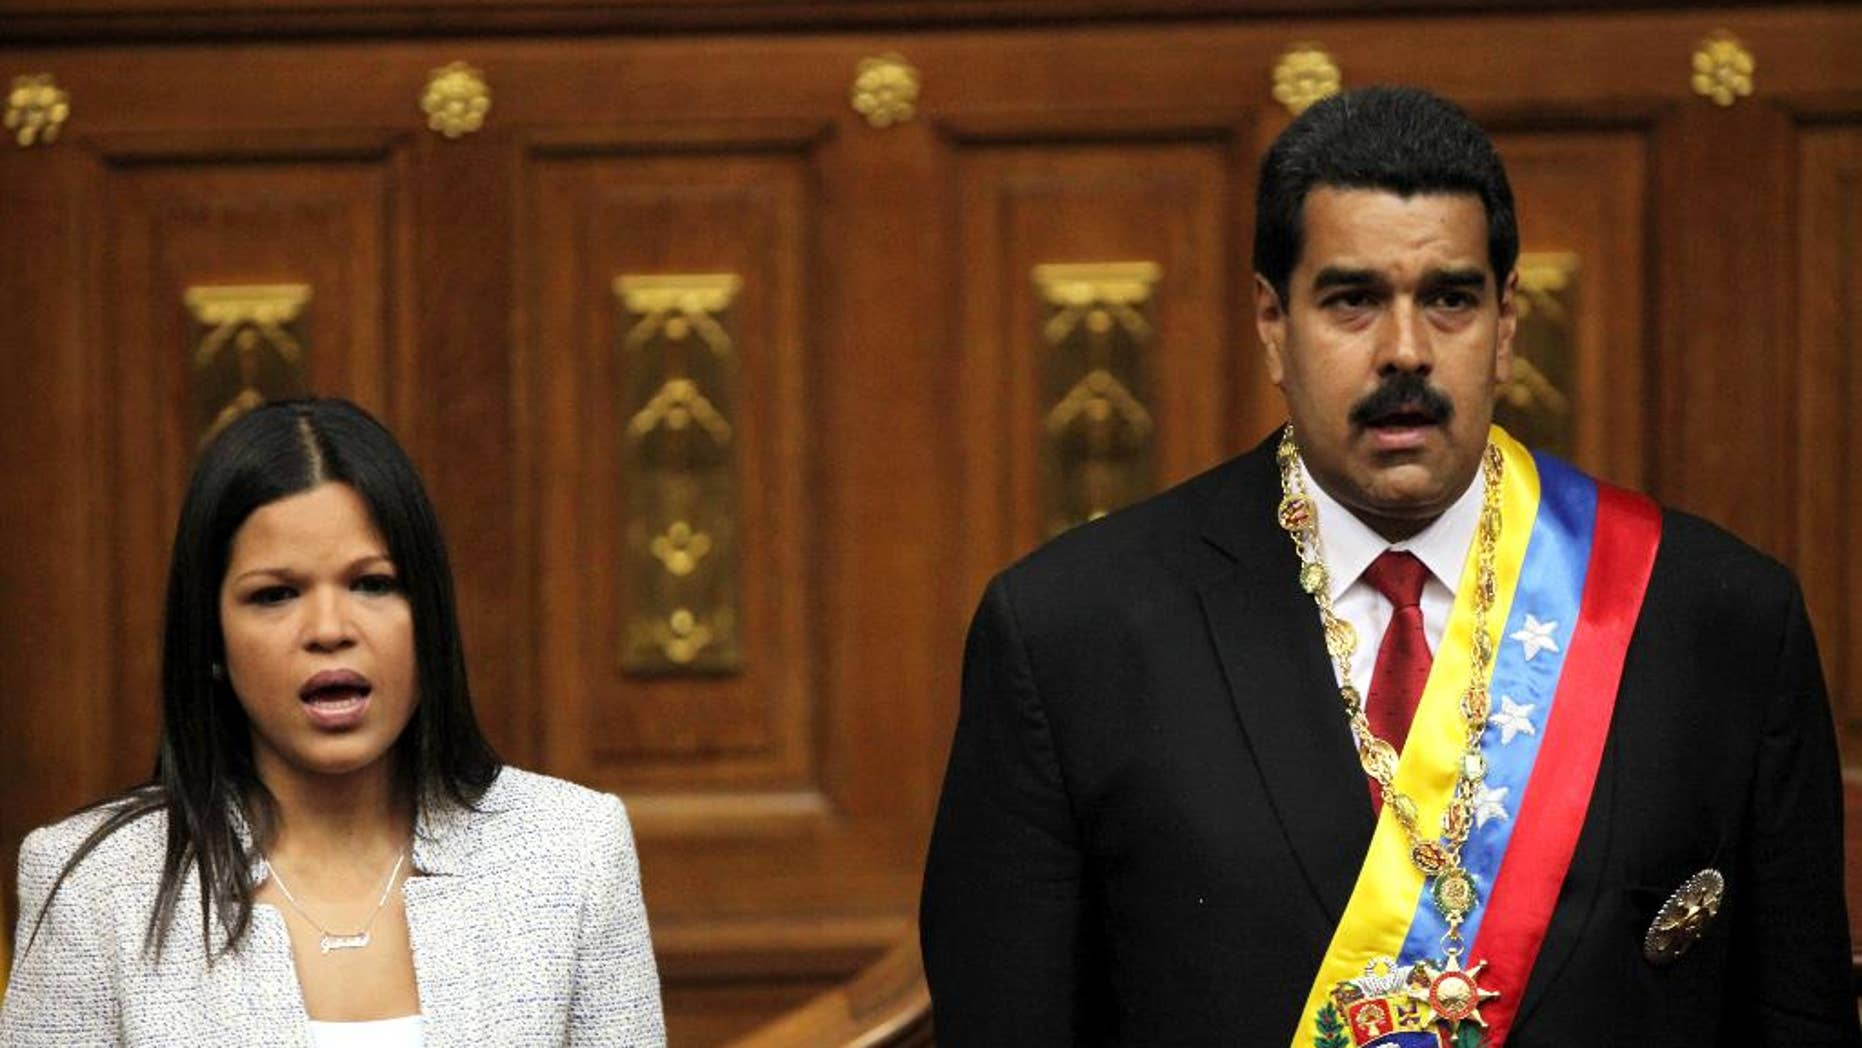 FILE - In this April 19, 2013 file photo, daughter of the late Hugo Chavez, Maria Gabriela Chavez and Venezuela's newly sworn-in President Nicolas Maduro, join in the singing of their national anthem in the National Assembly, in Caracas, Venezuela. In a July 23, 2014 closed-door meeting July at U.N. headquarters in New York, Venezuela quietly secured the backing of Latin America and the Caribbean to obtain a seat on the United Nations Security Council. Maria Gabriela Chavez is Venezuela's alternate ambassador to the U.N. (AP Photo/Fernando Llano, File)